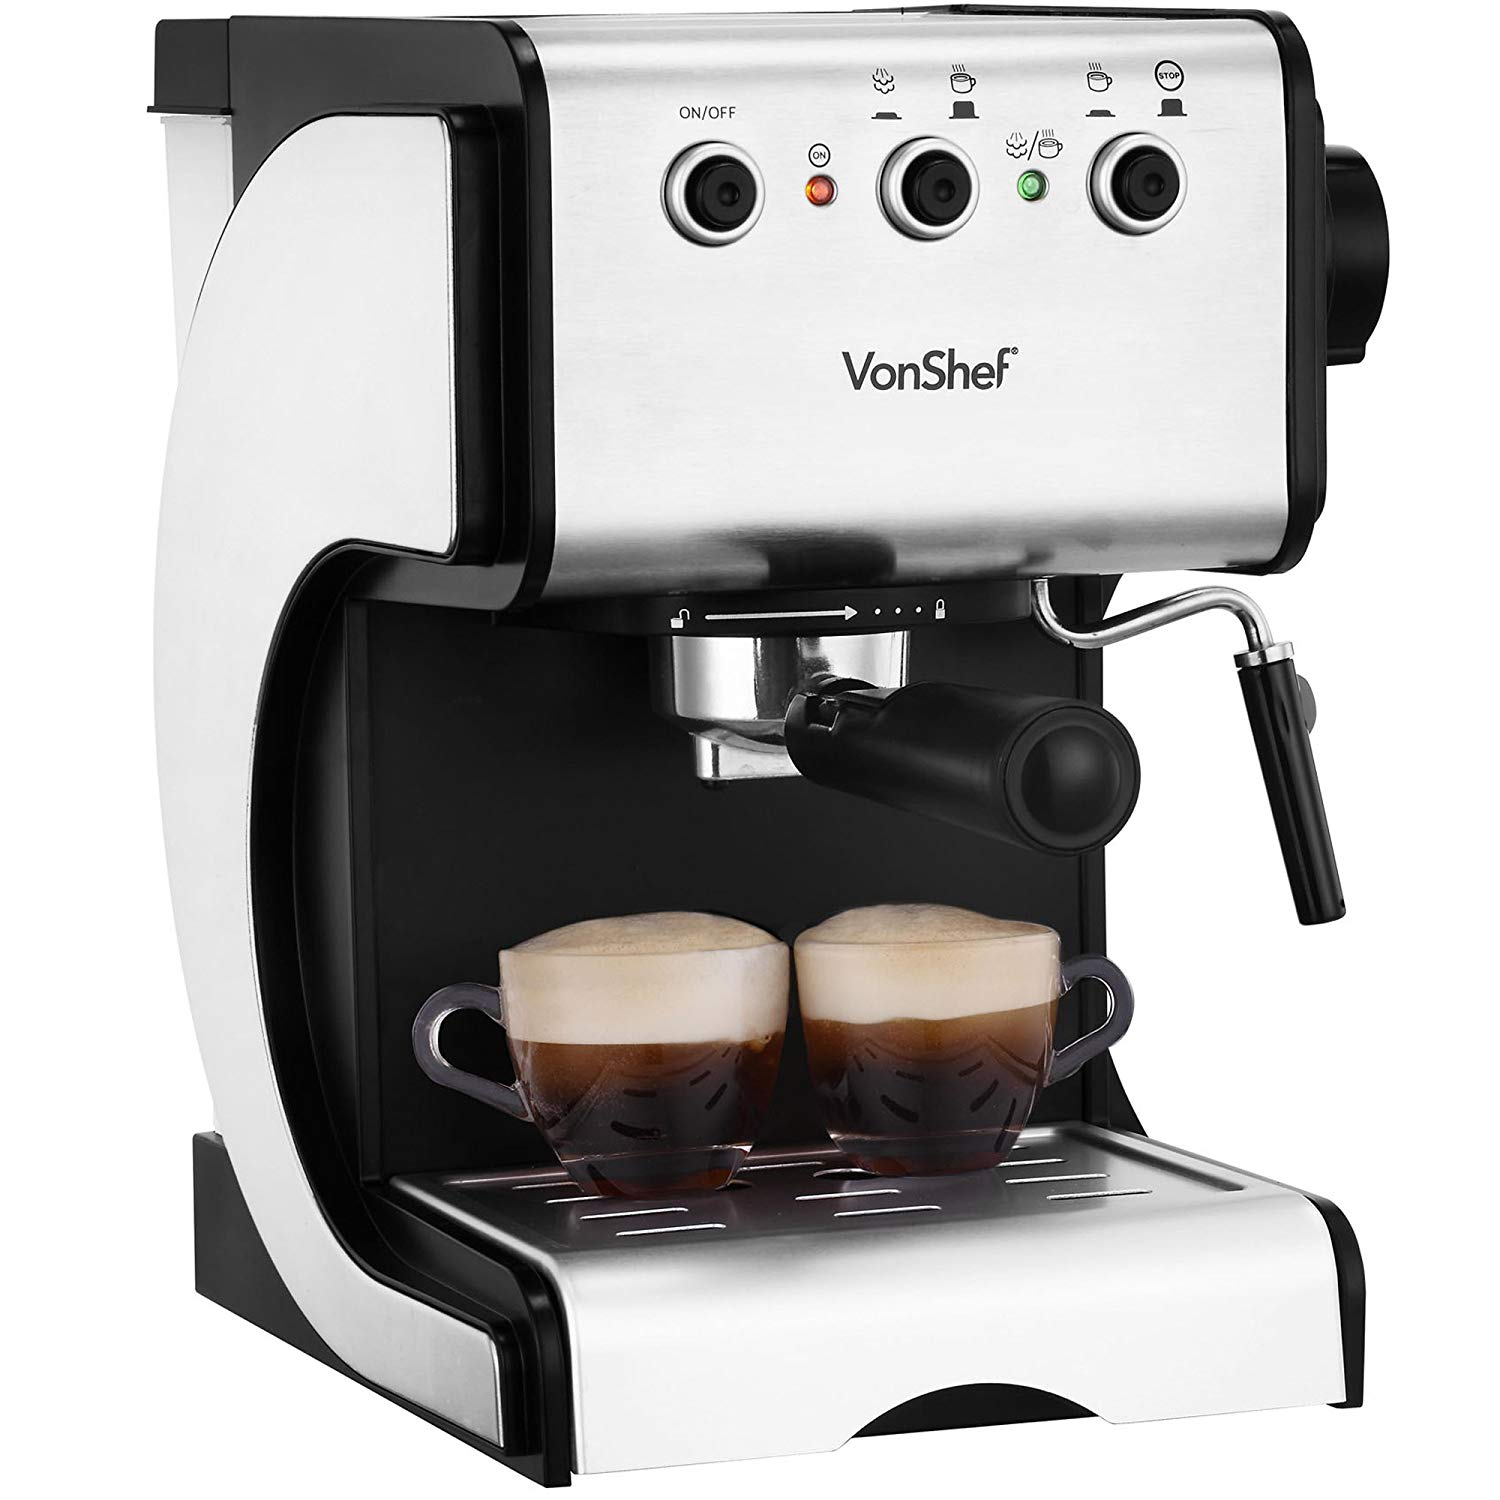 VonShef 15 Bar Coffee Maker